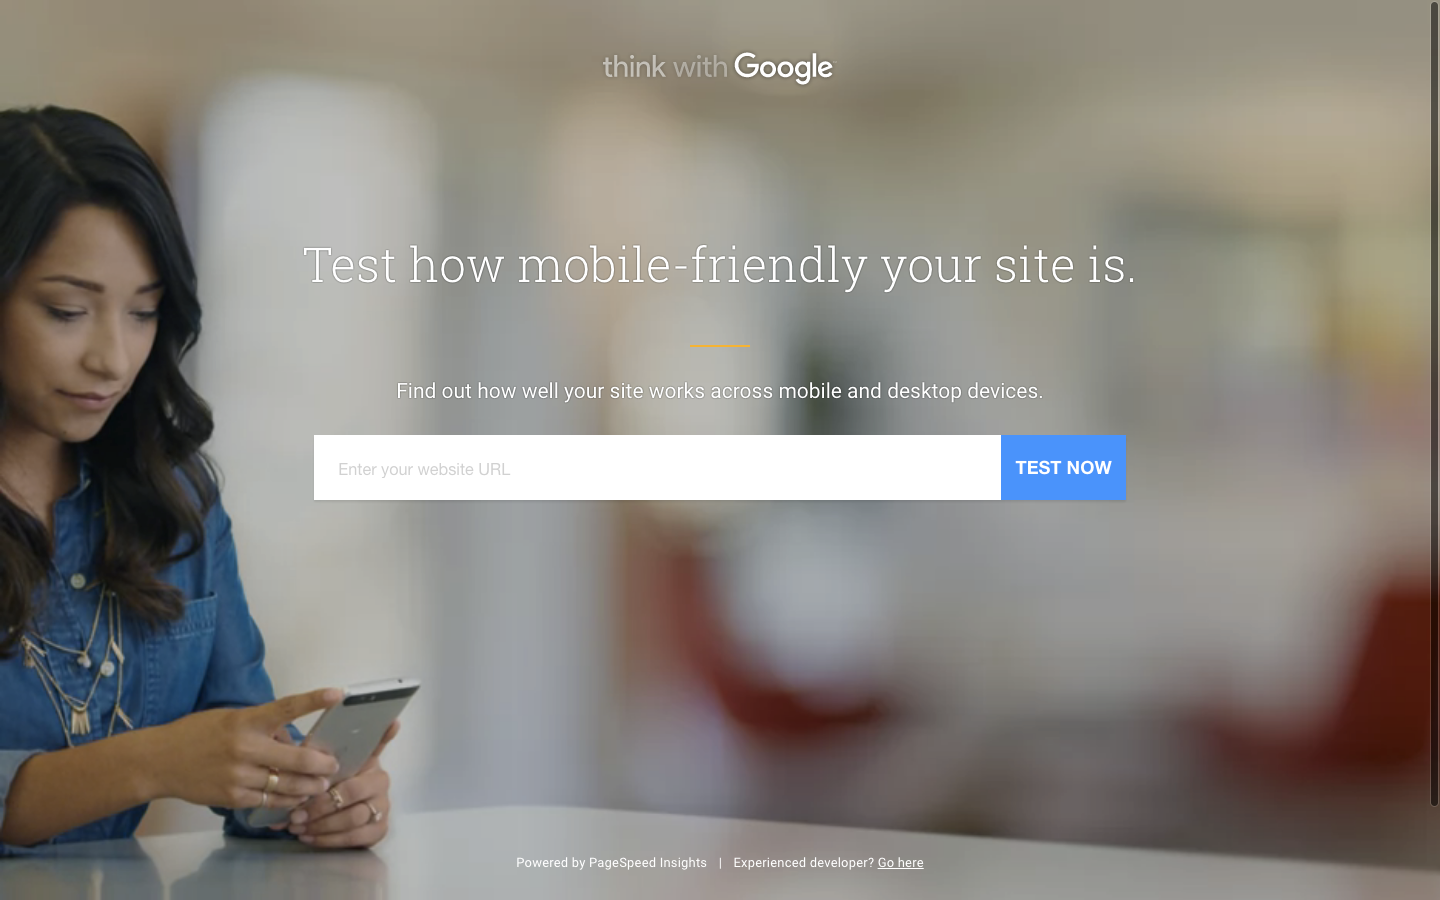 Google's Test My Site tool